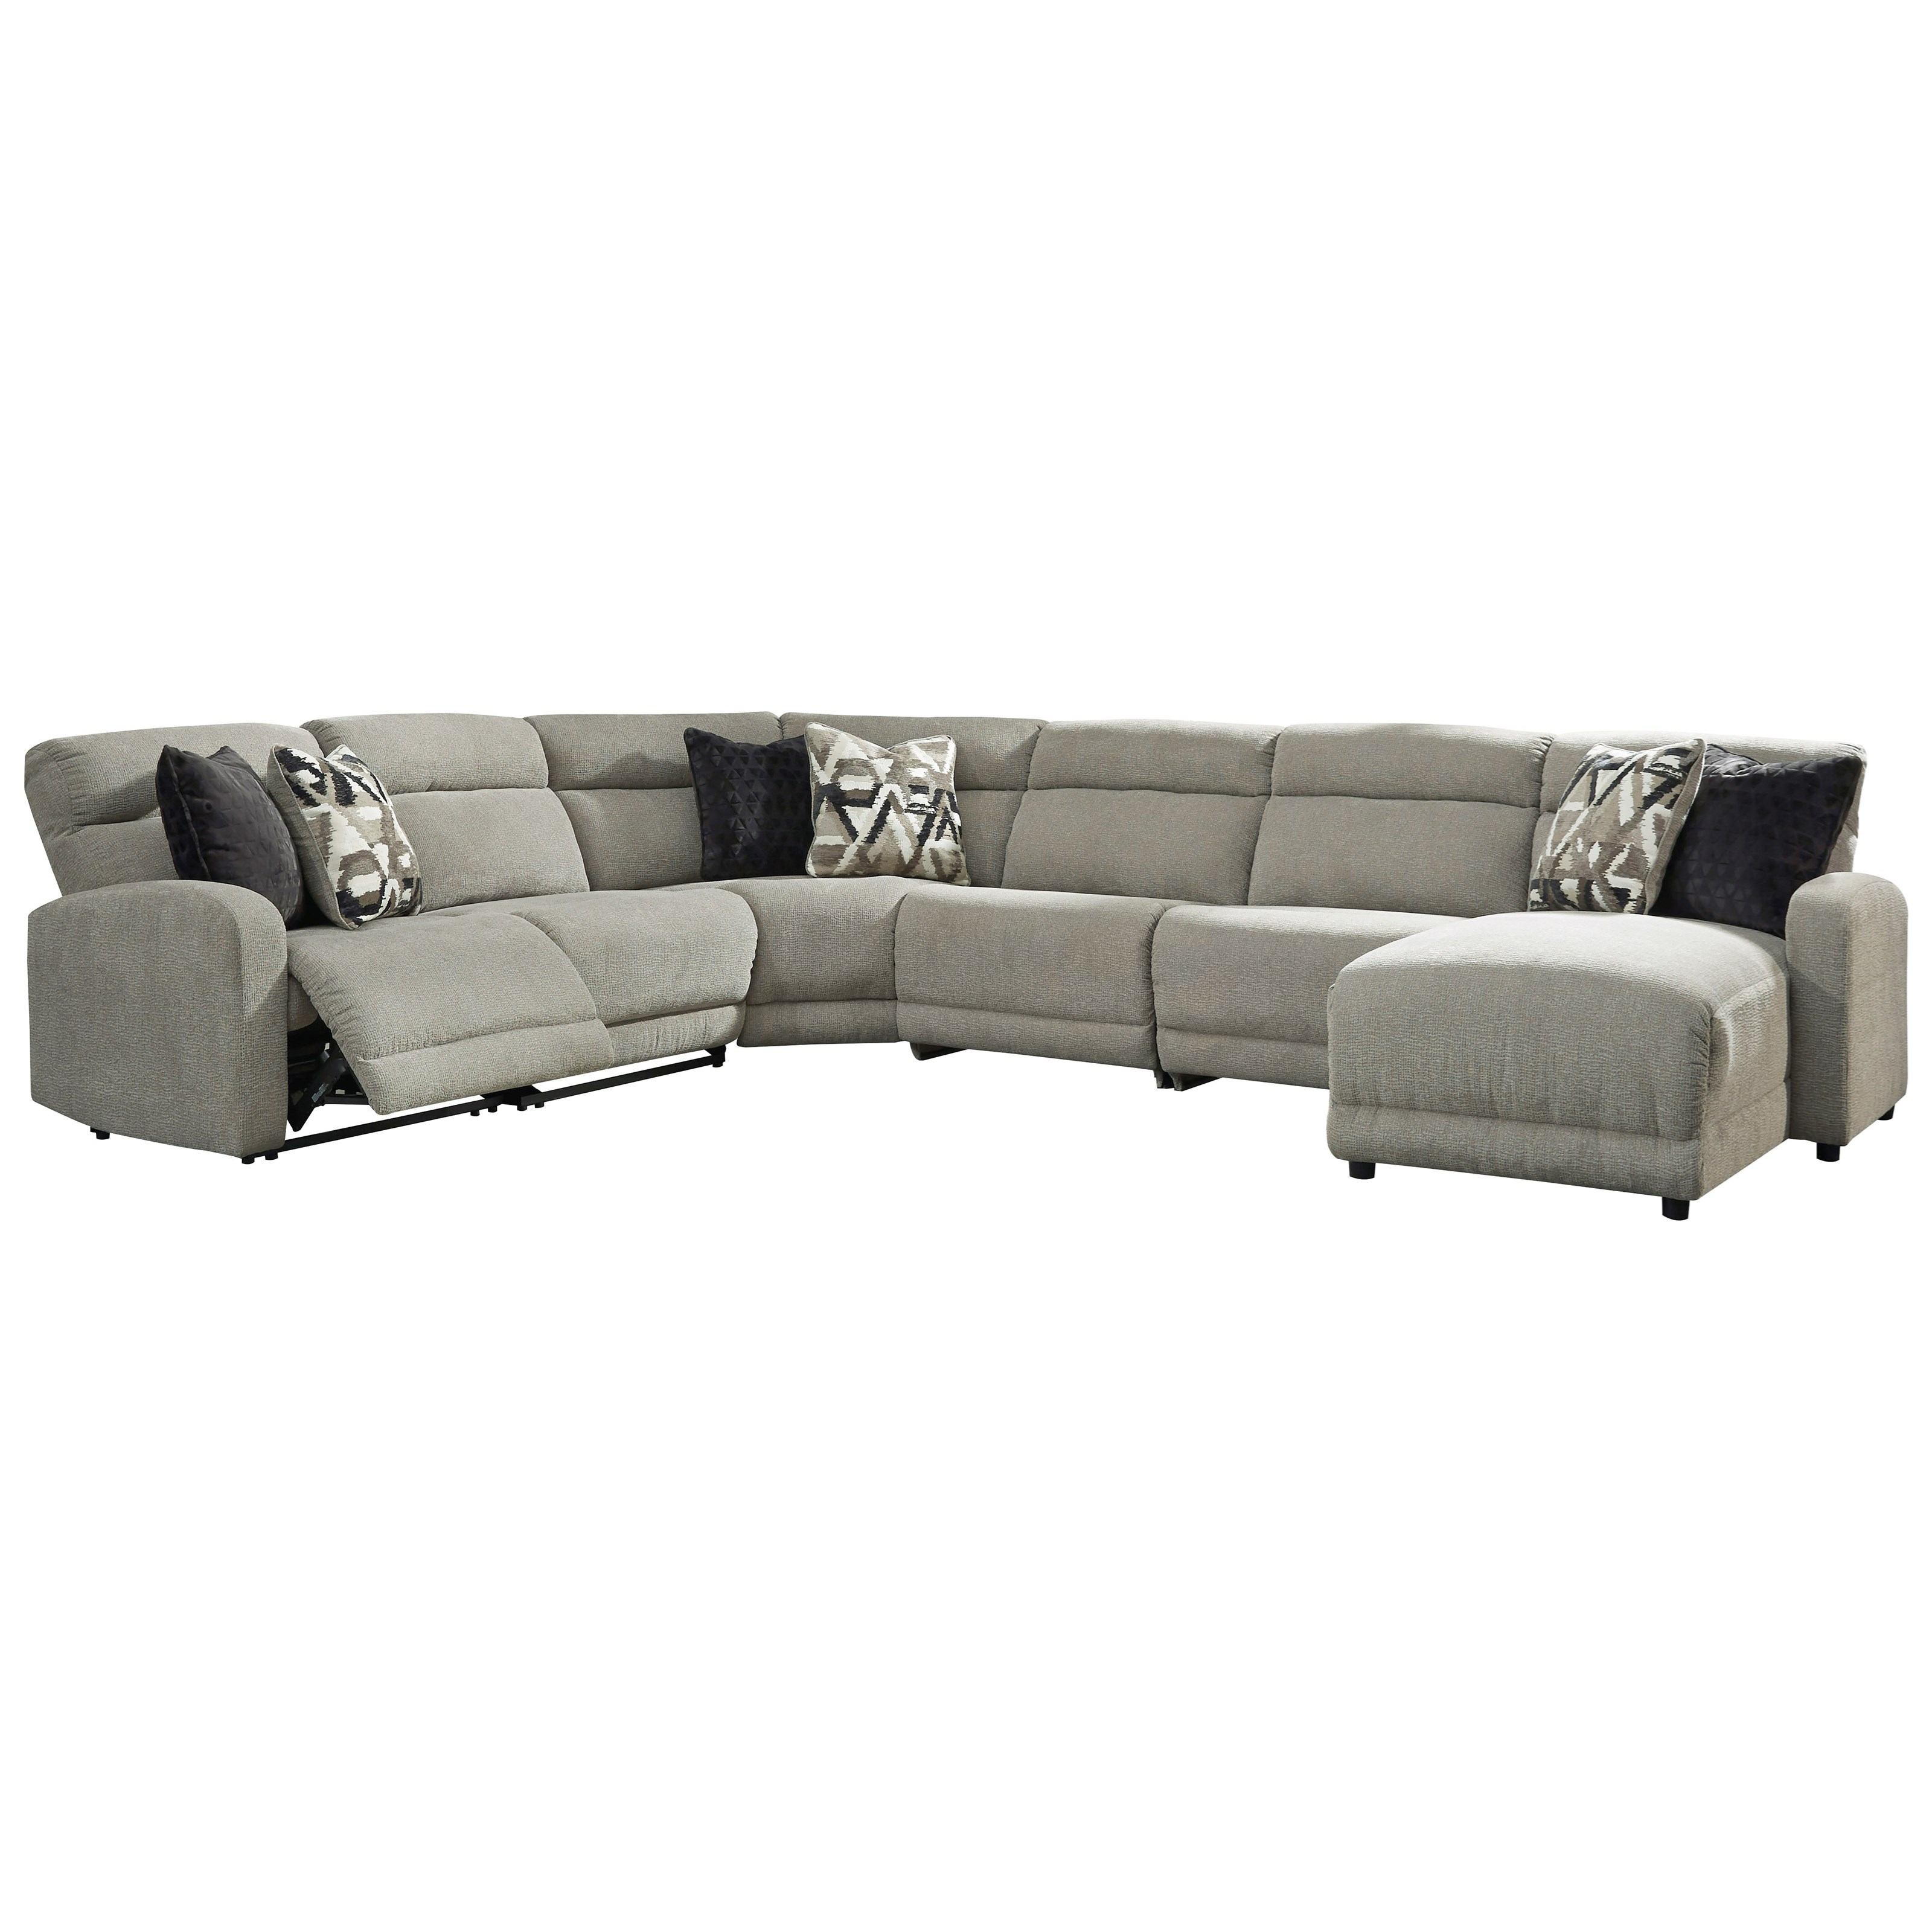 Colleyville Power Reclining Sectional by Signature Design by Ashley at Value City Furniture